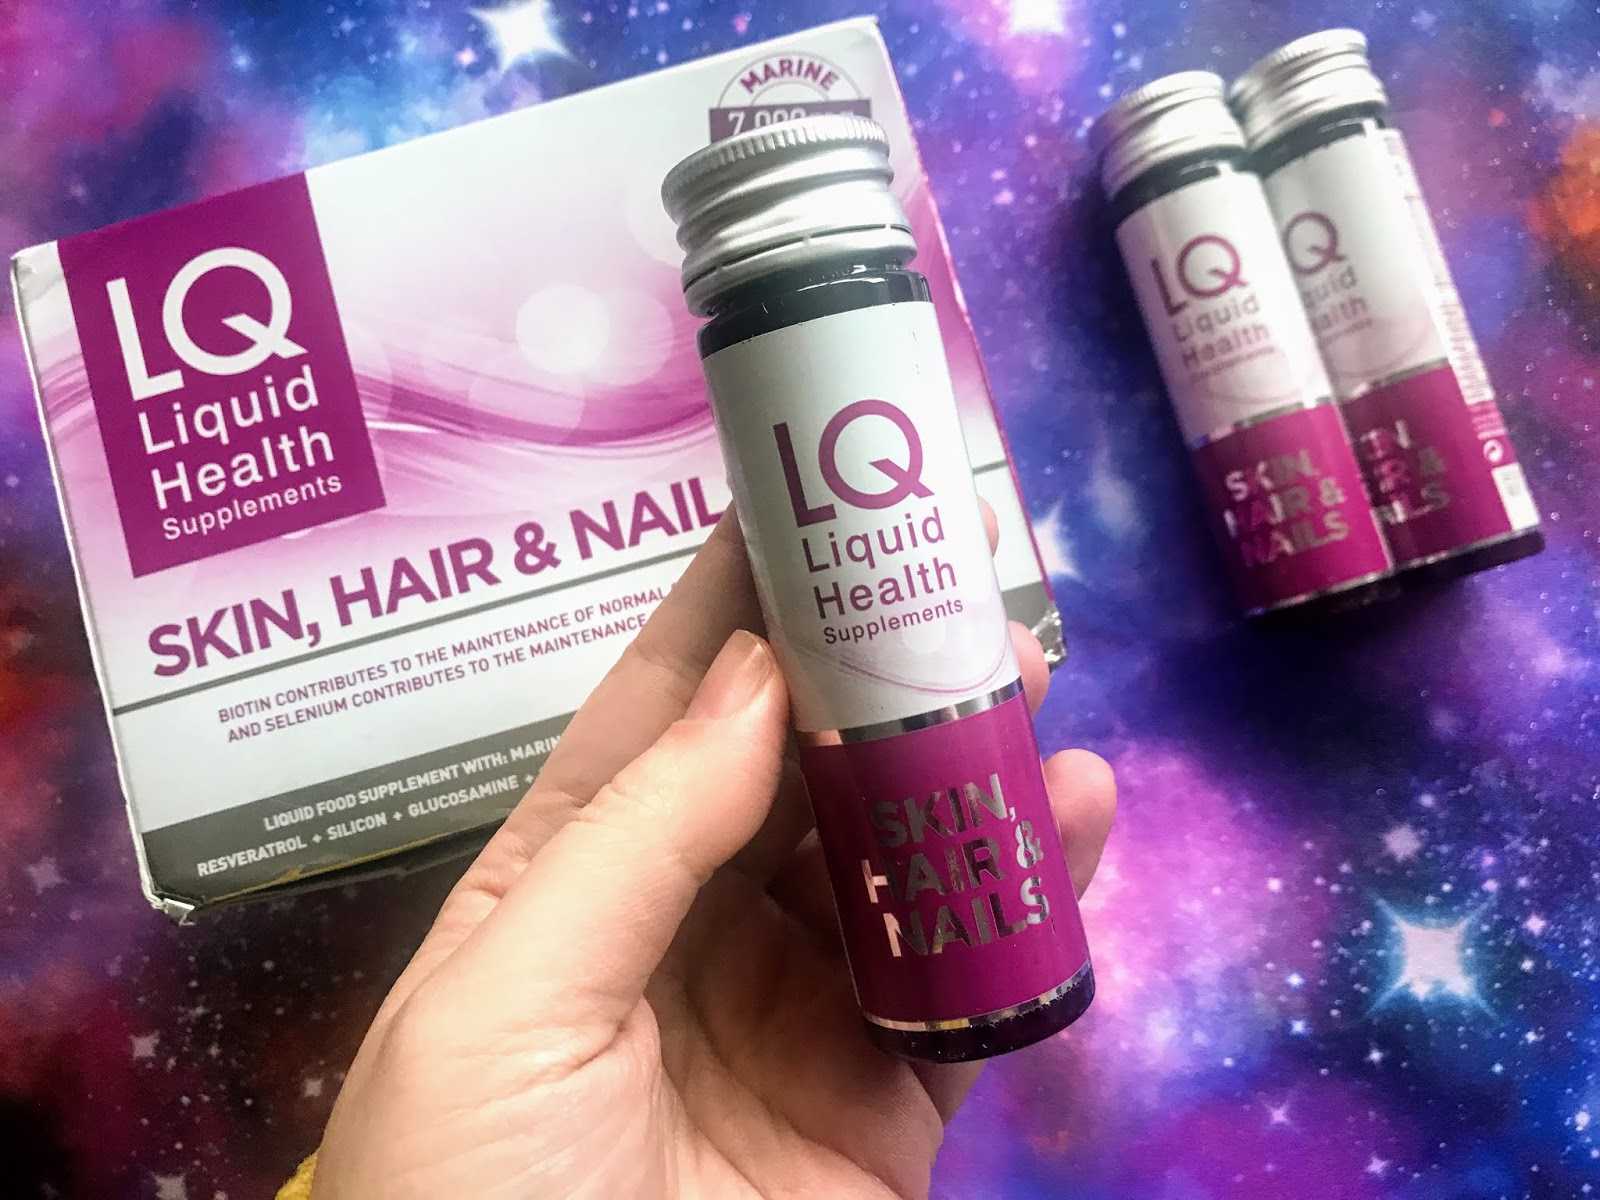 LQ Liquid Health Skin, Hair and Nails Supplements | Review